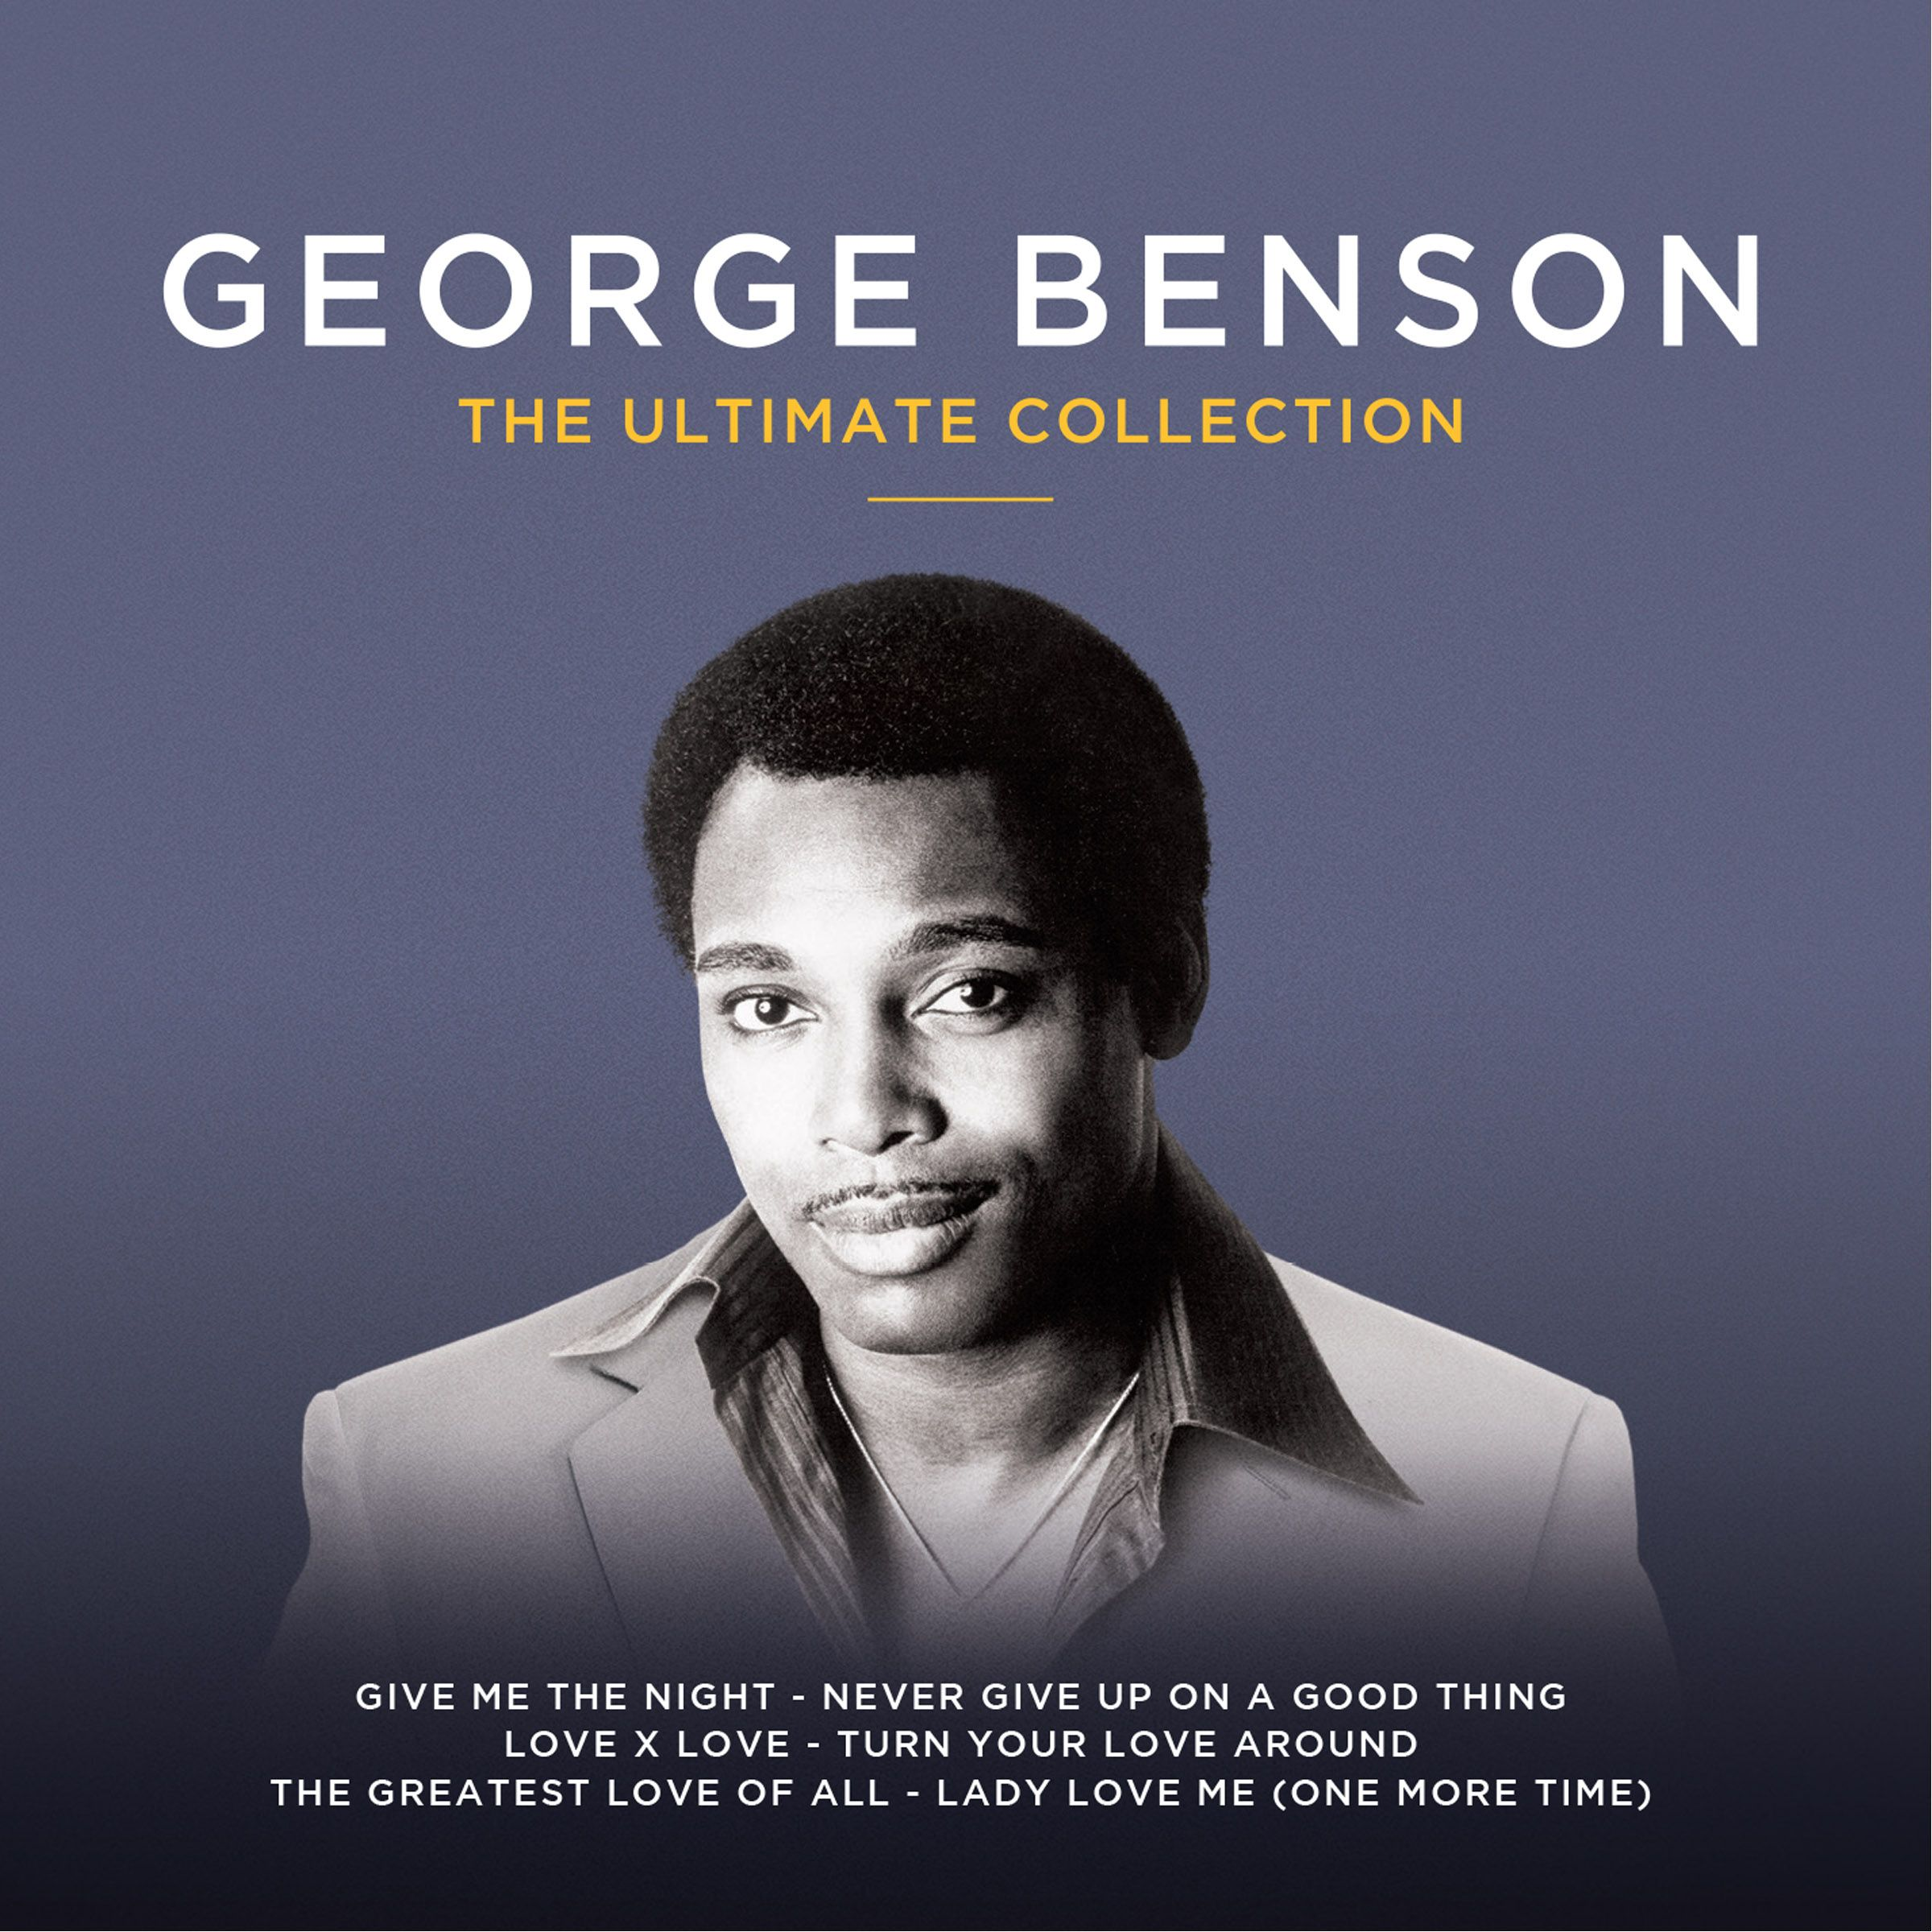 George Benson is one of the best know and best loved Soul/Jazz artists of the…